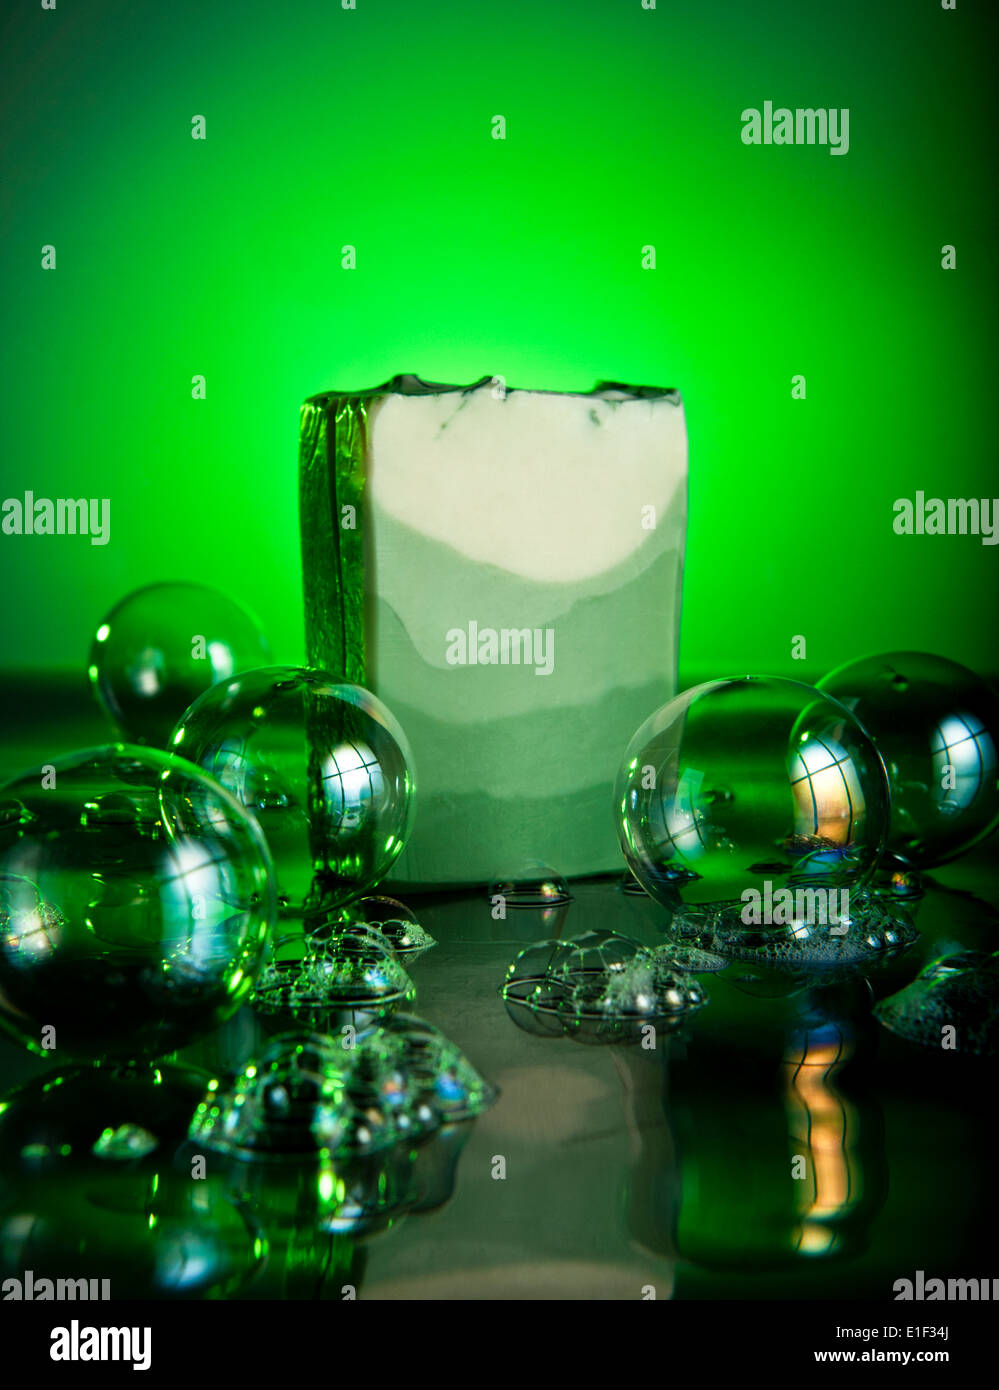 Hand Crafted Soap with bubbles and green lighted background. This image can be used in a set with E1F24F and E1E5RE - Stock Image